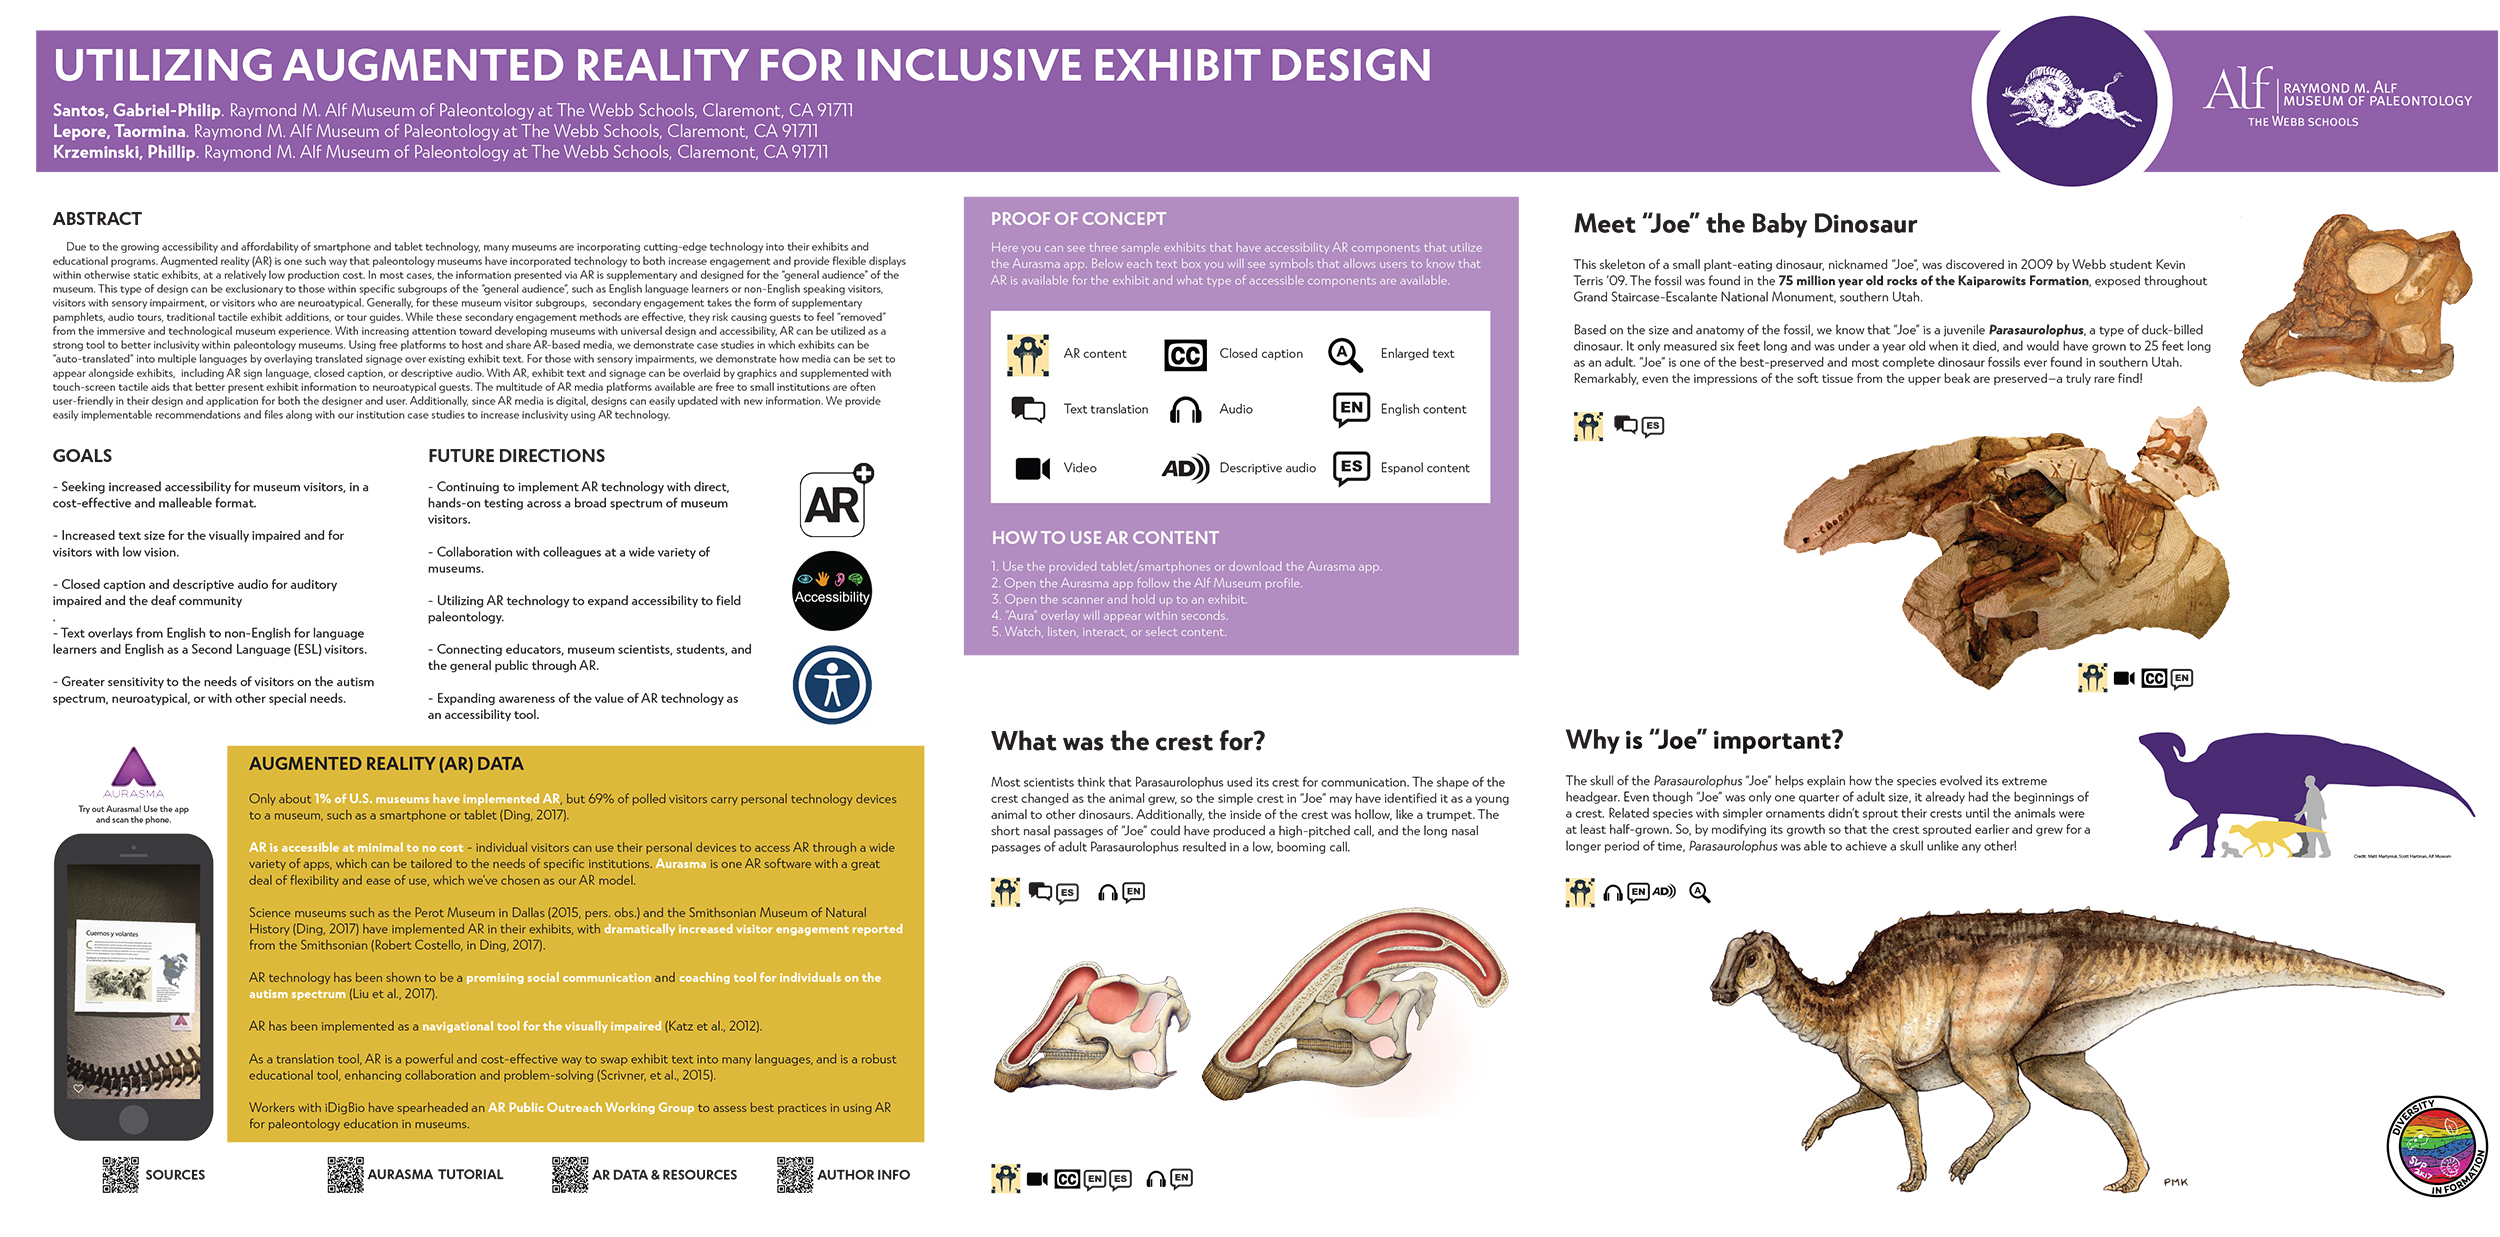 Inclusive Exhibit Design - SVP 2017